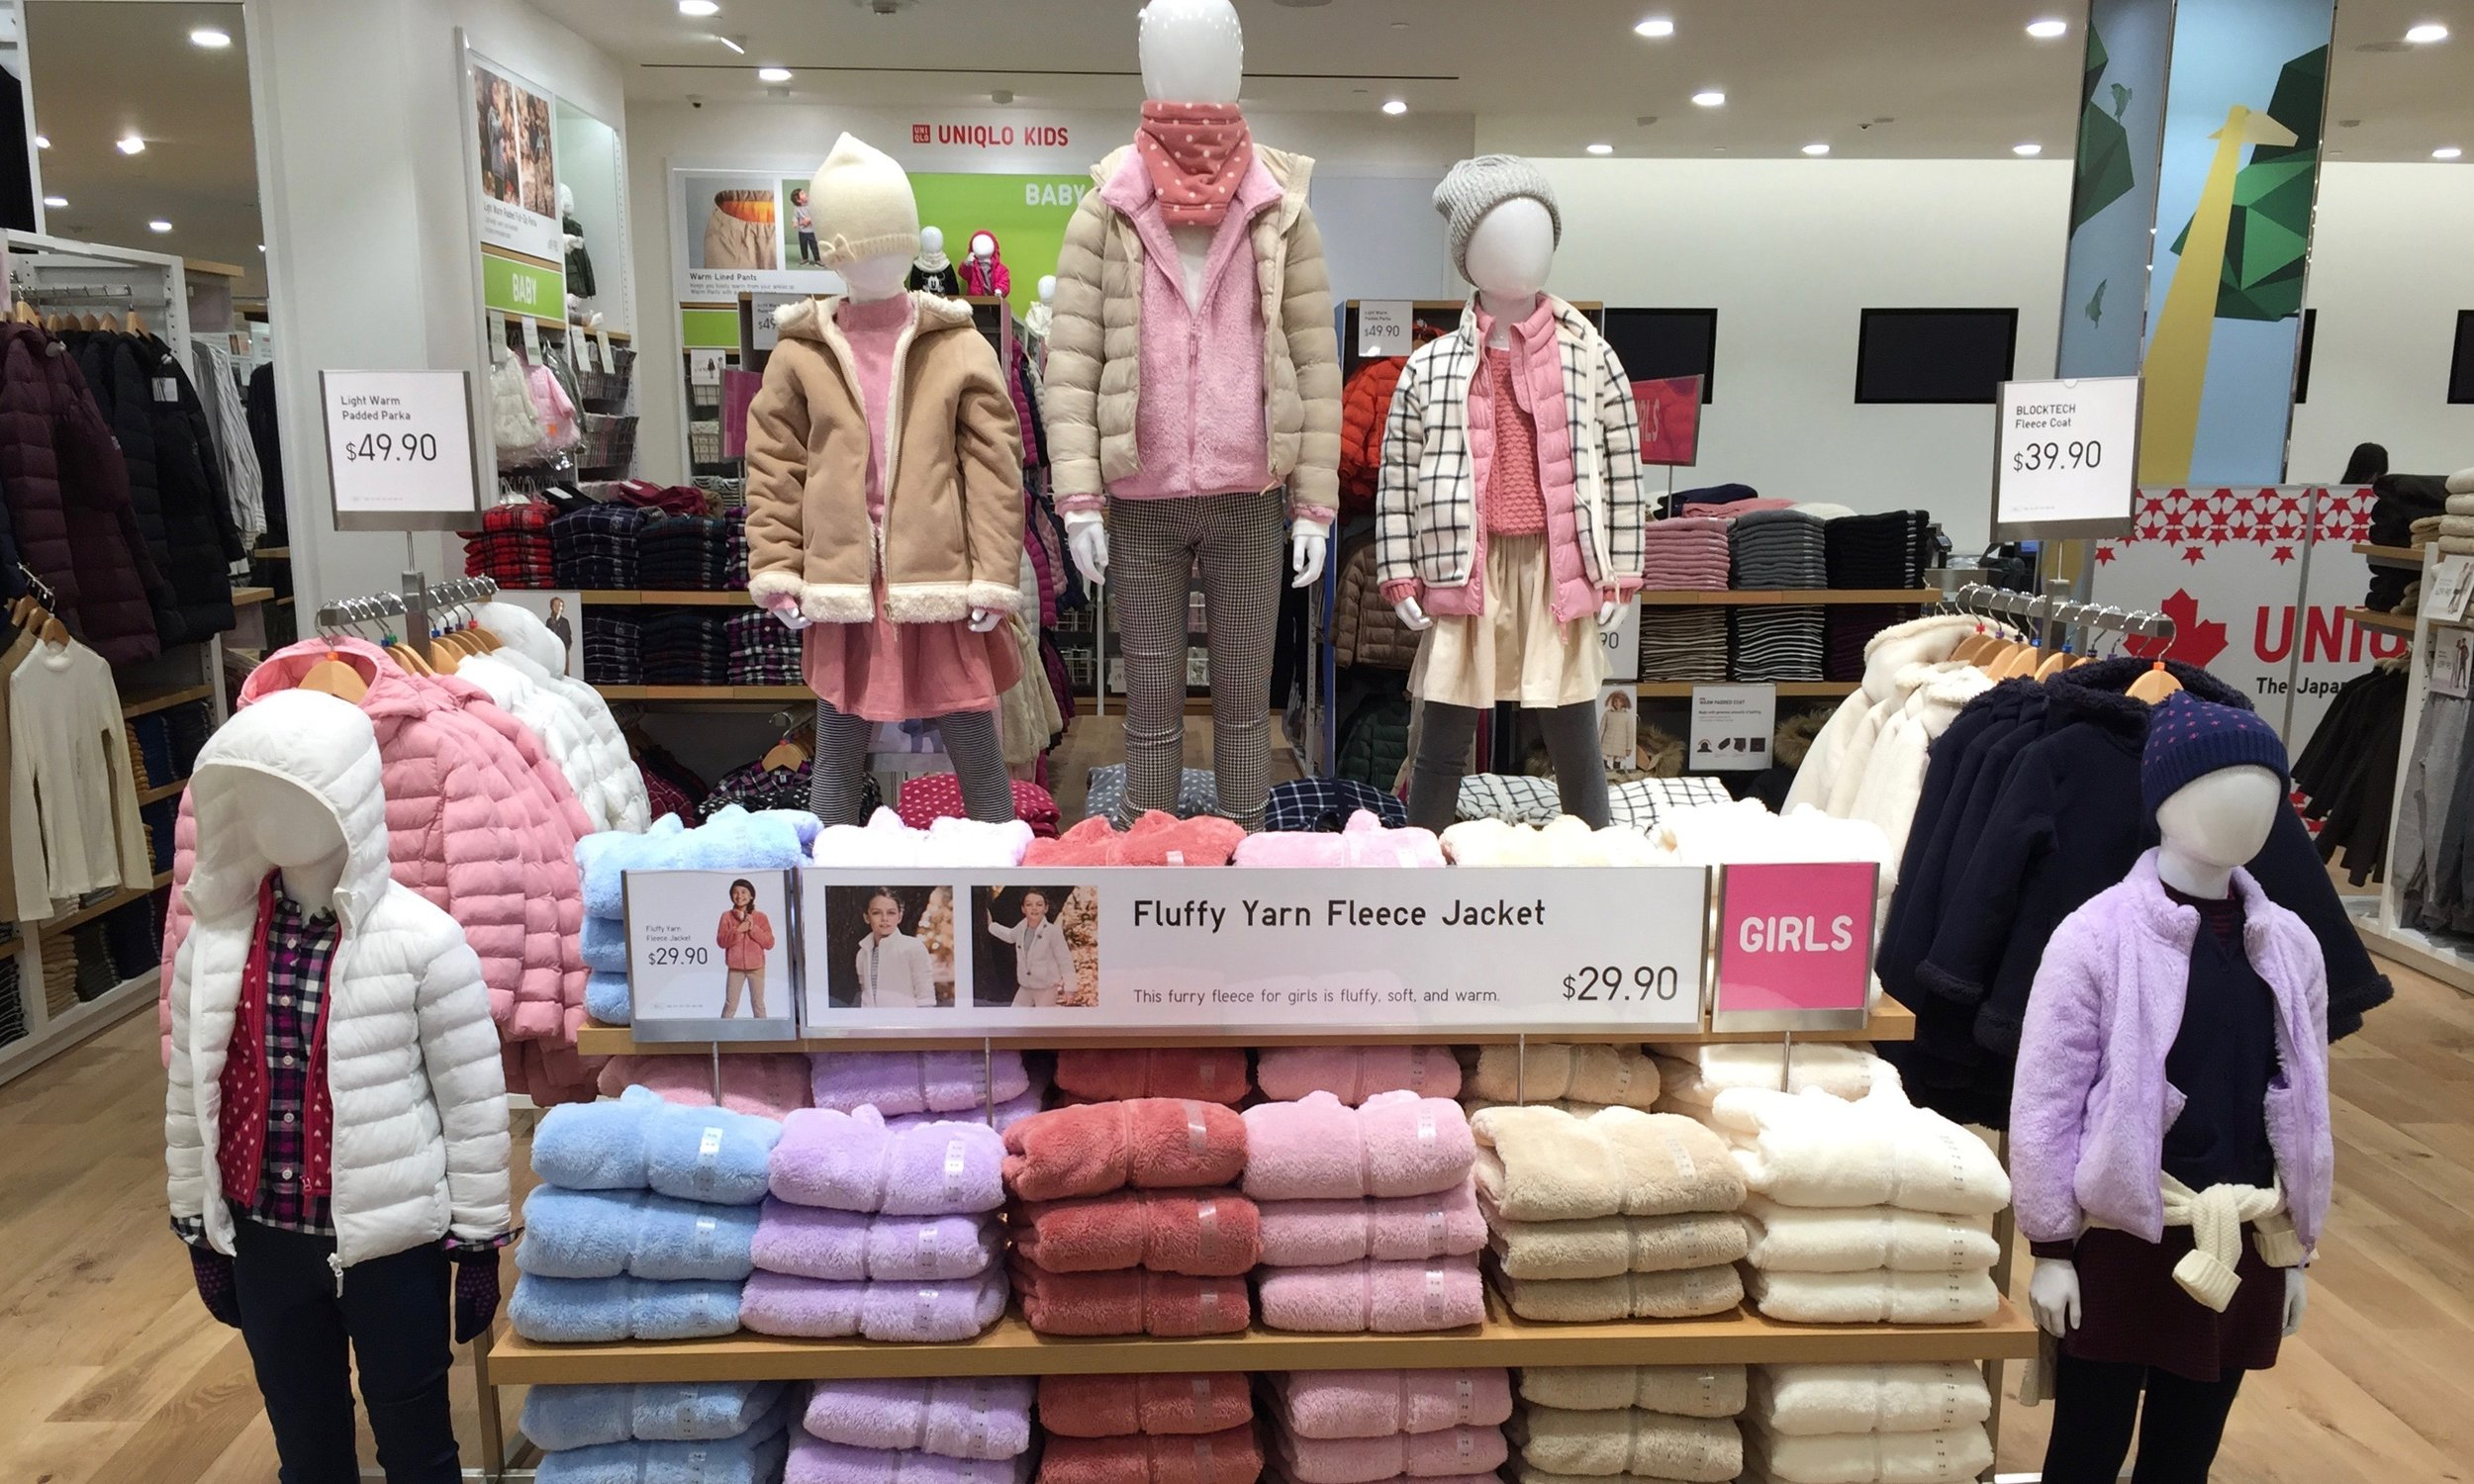 Flurry yarn fleece jackets for girls are found on the second floor